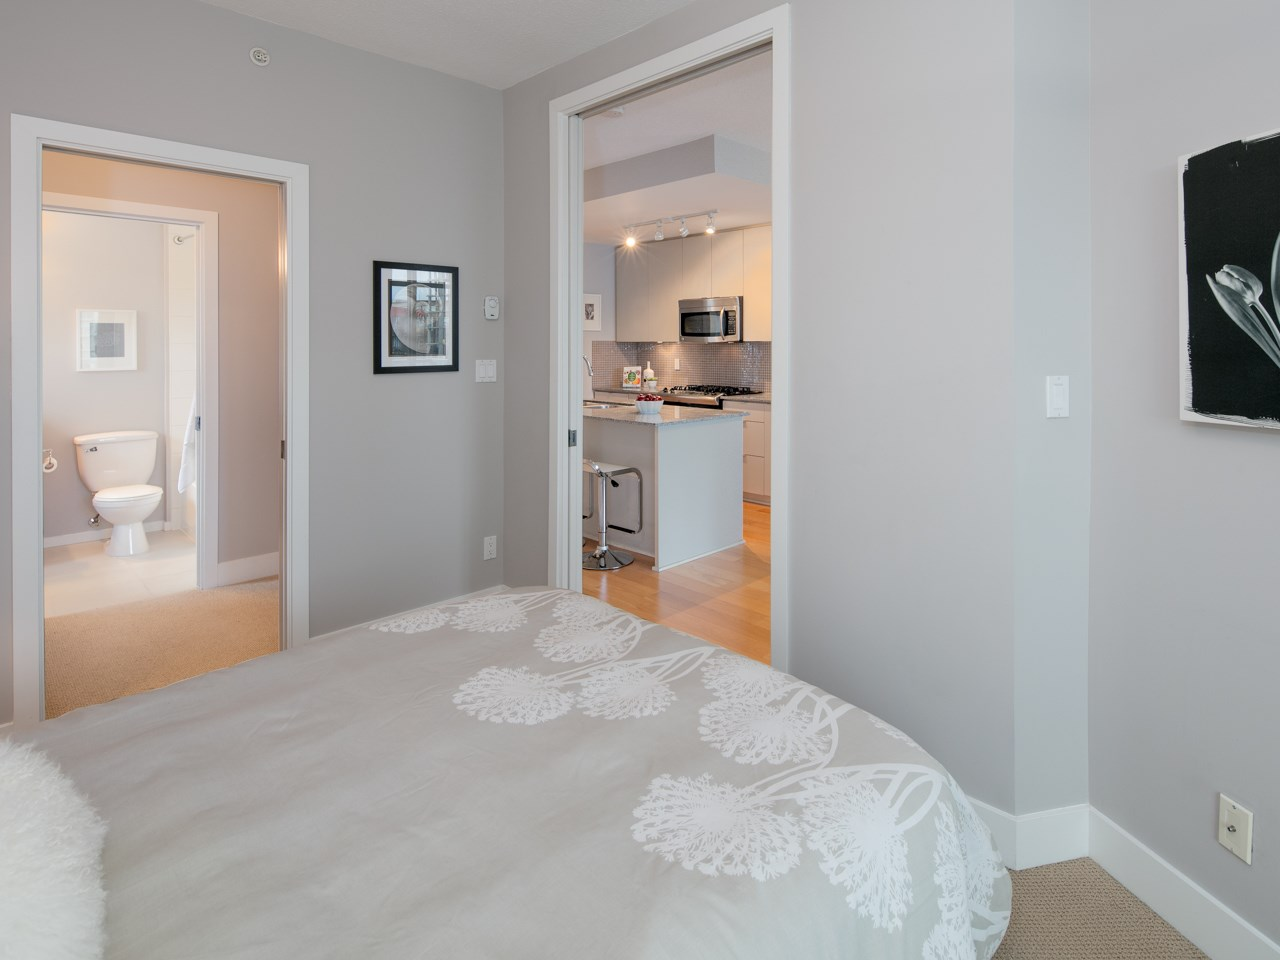 "Photo 14: 512 298 E 11TH Avenue in Vancouver: Mount Pleasant VE Condo for sale in ""The Sophia"" (Vancouver East)  : MLS(r) # R2124368"